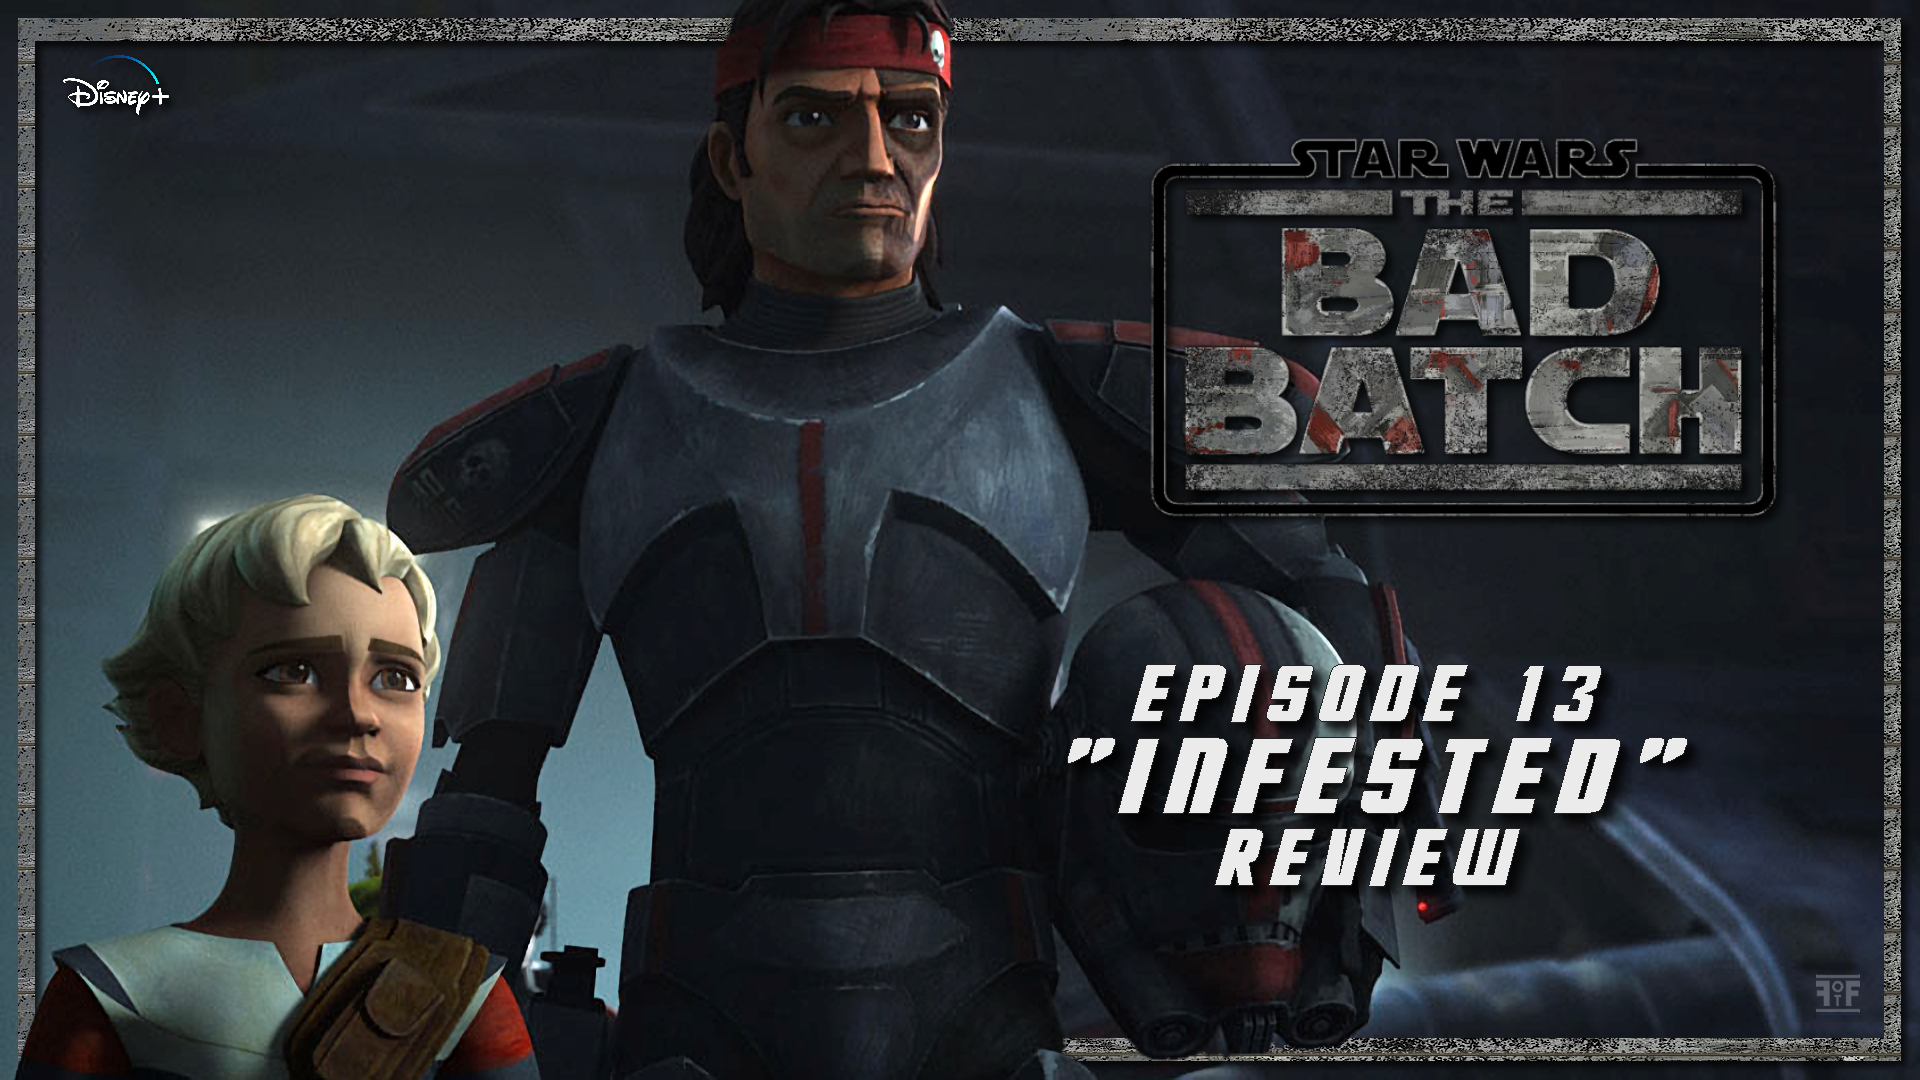 Star Wars: The Bad Batch (Episode 13: Infested)